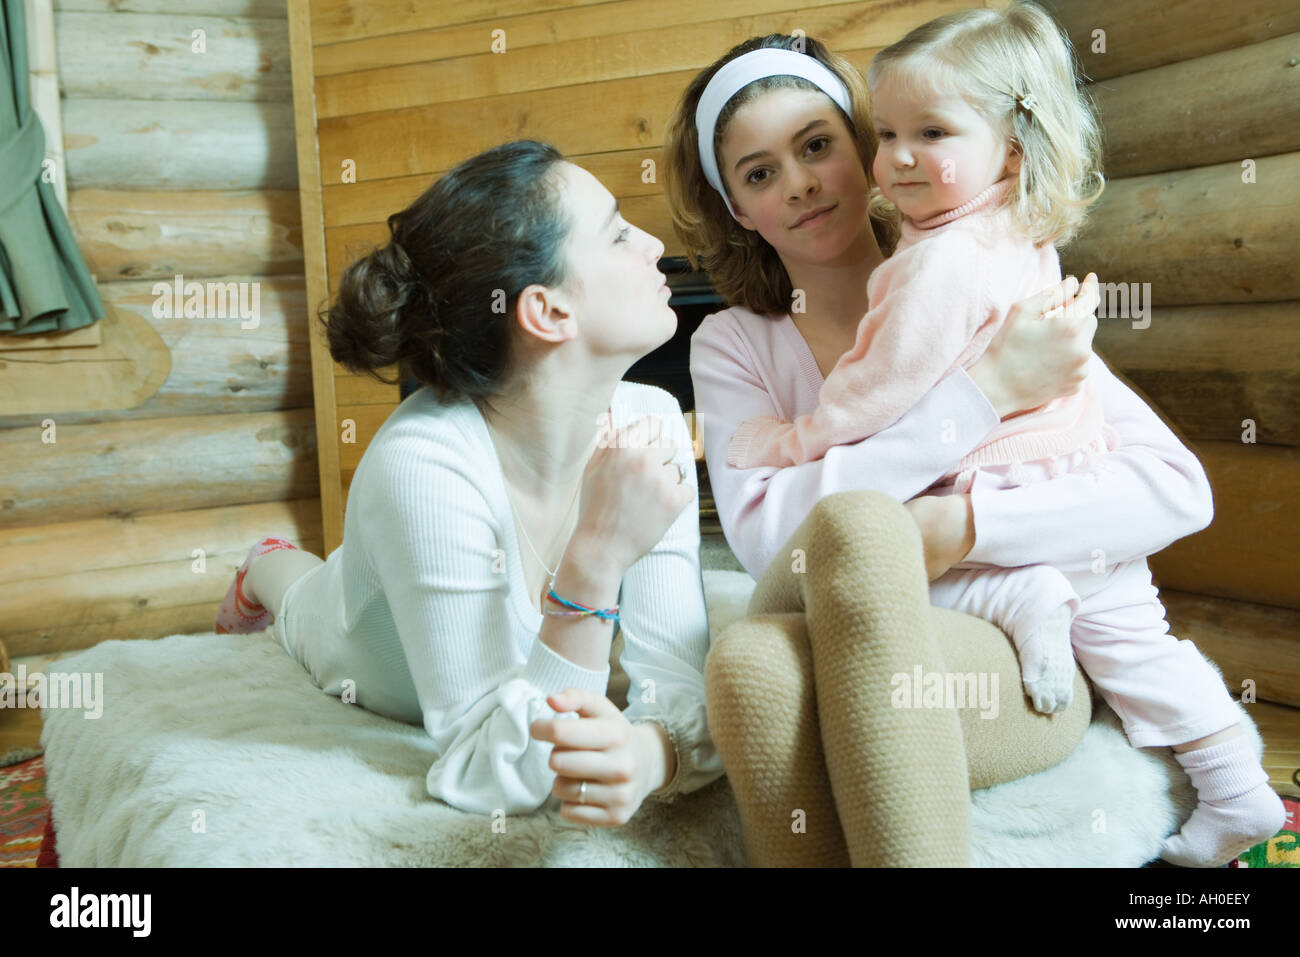 Two teenage girls sitting on bed, one holding toddler on lap - Stock Image